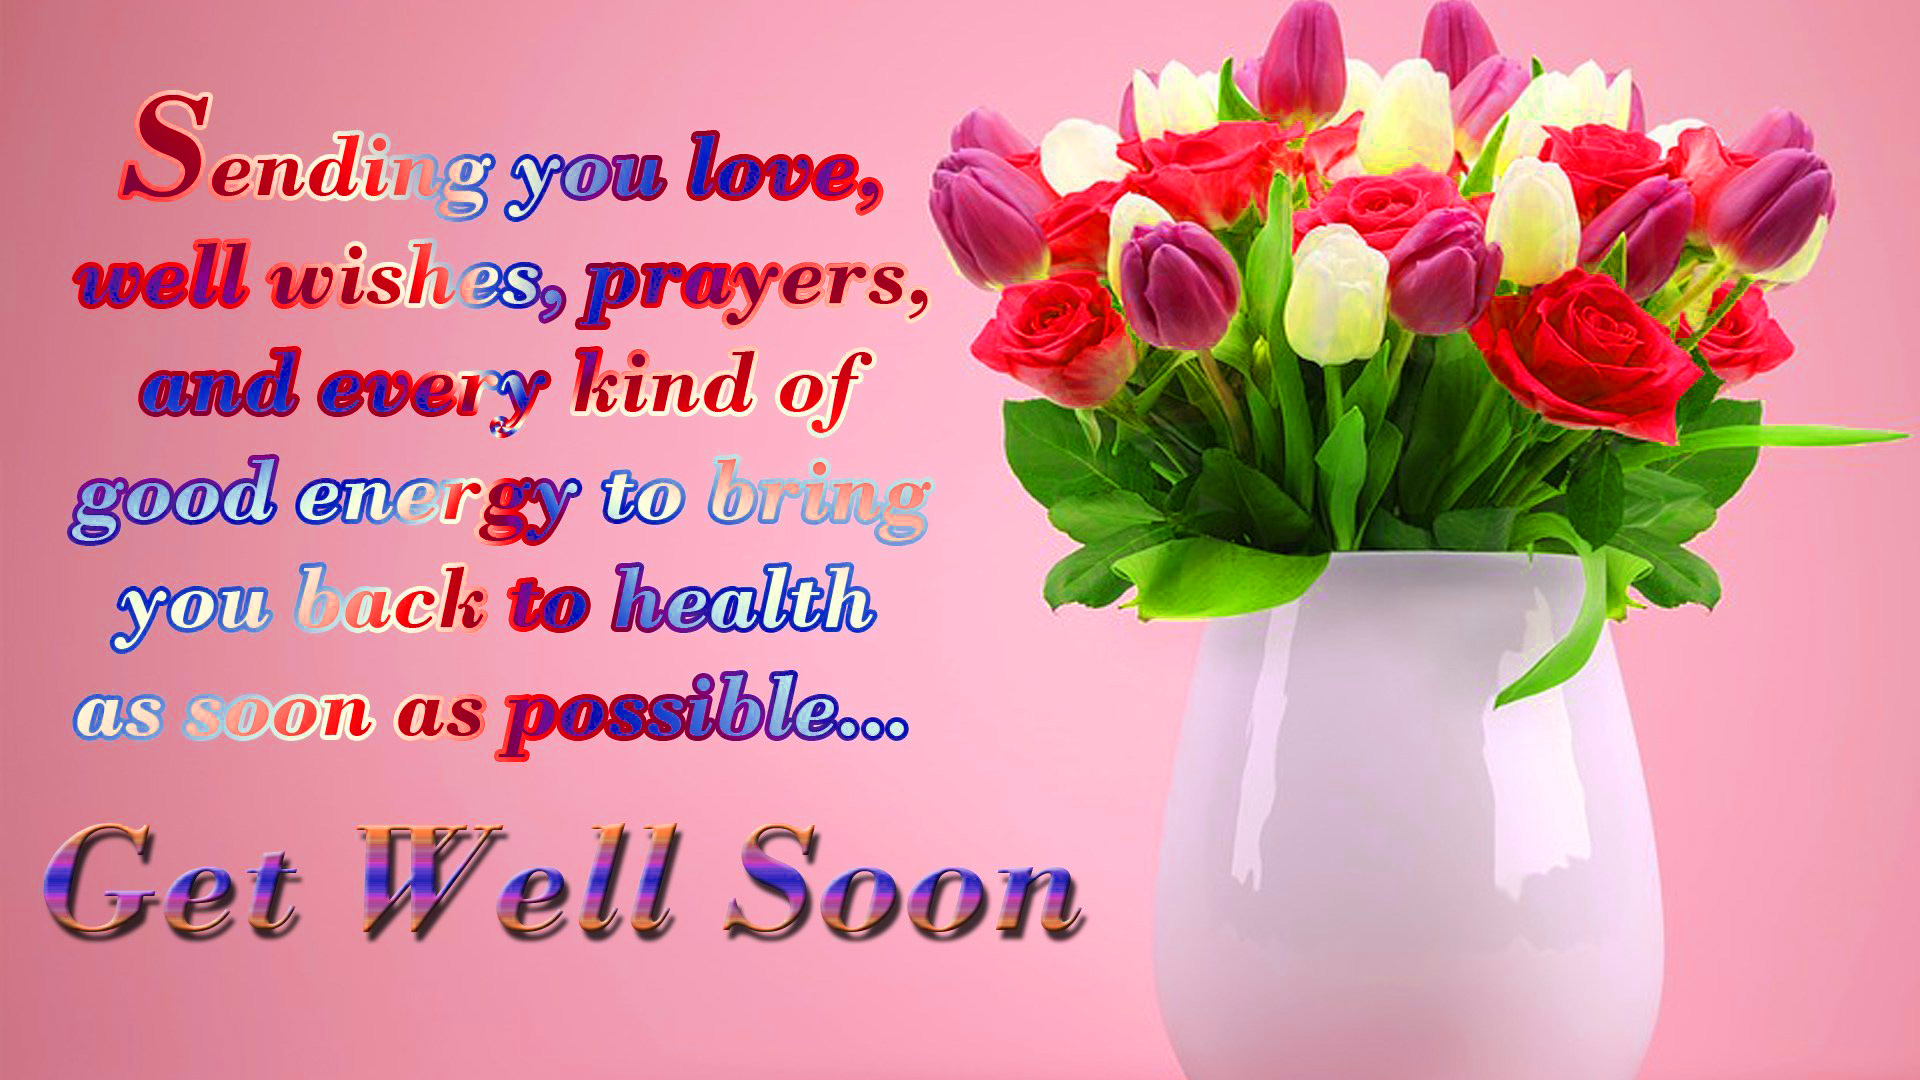 Get Well Soon Images Wallpaper for Whatsapp